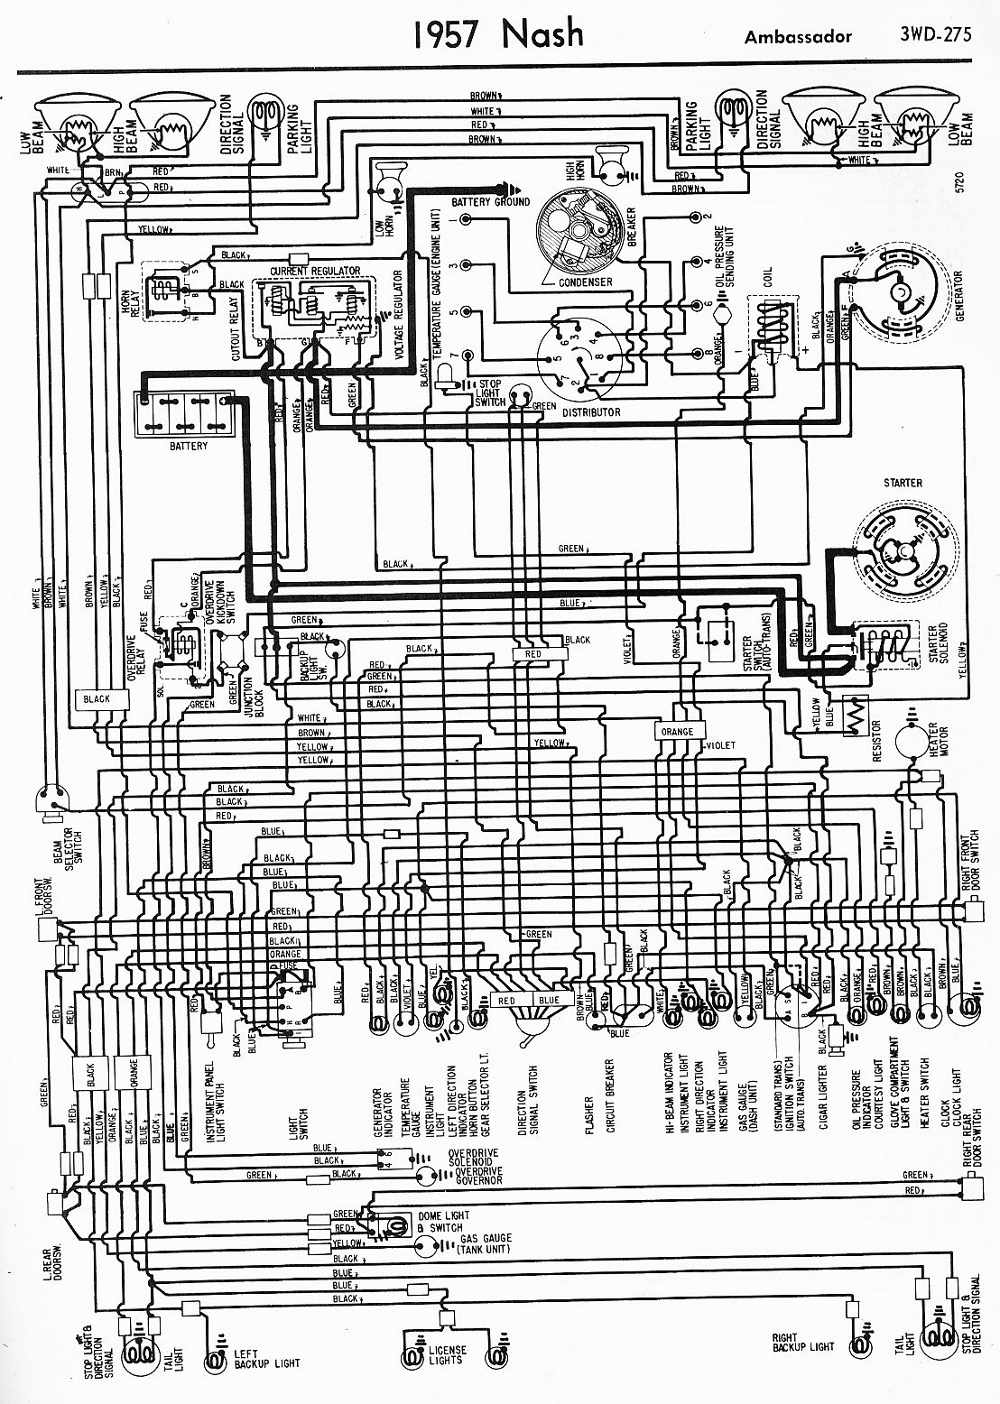 1950 Packard Wiring Diagram Trusted Diagrams Dodge Truck 1951 Hp Z800 Motherboard